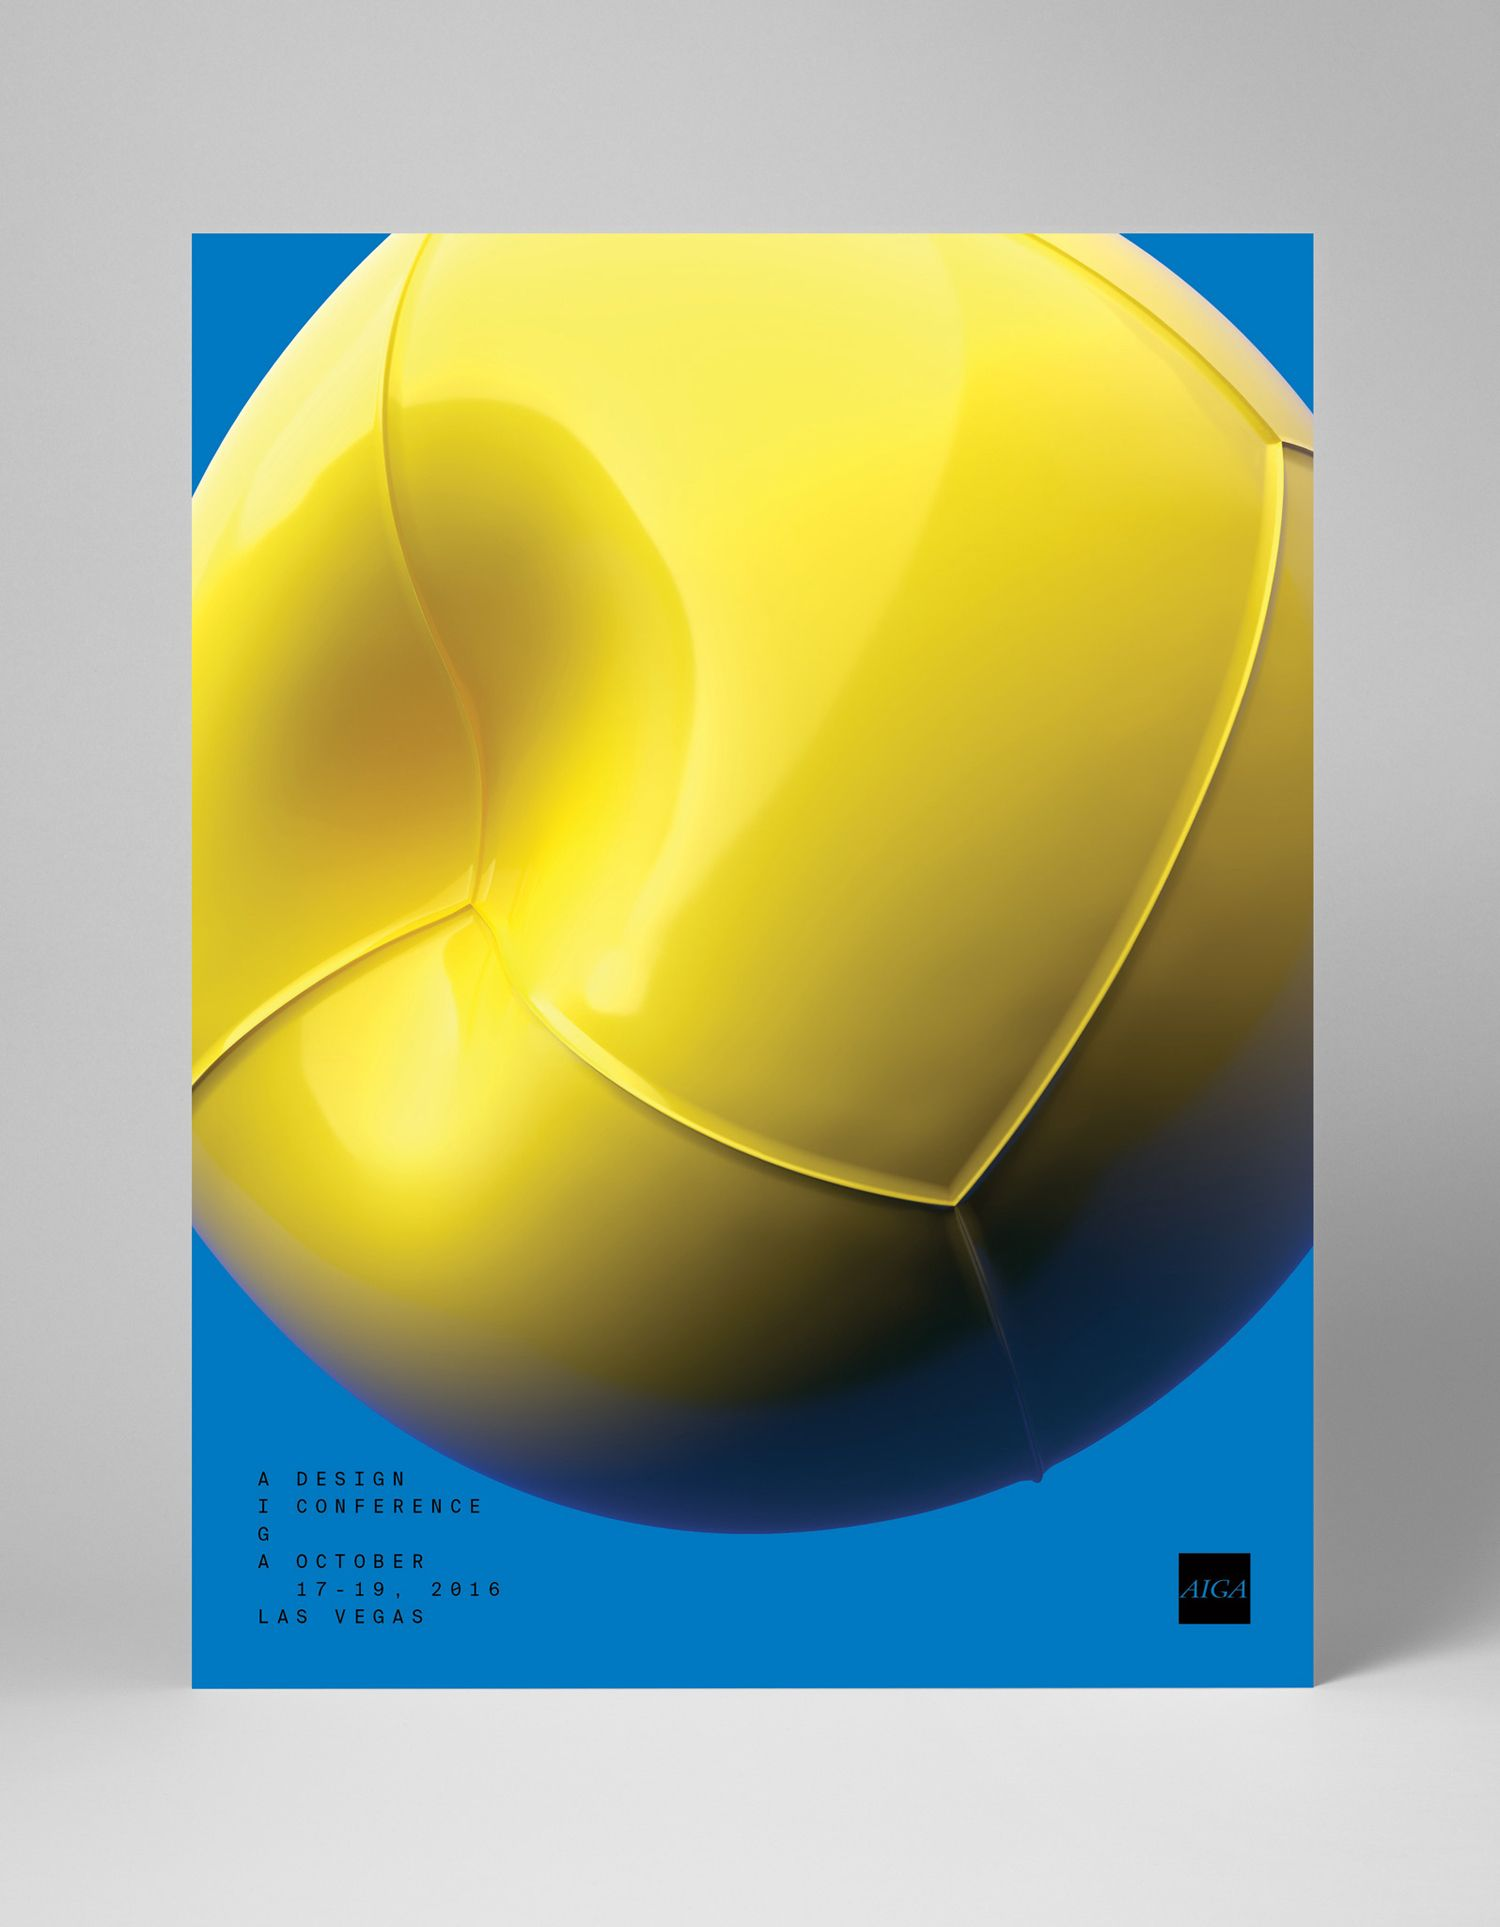 AIGA Design Conference by Mother Design. #branding #poster